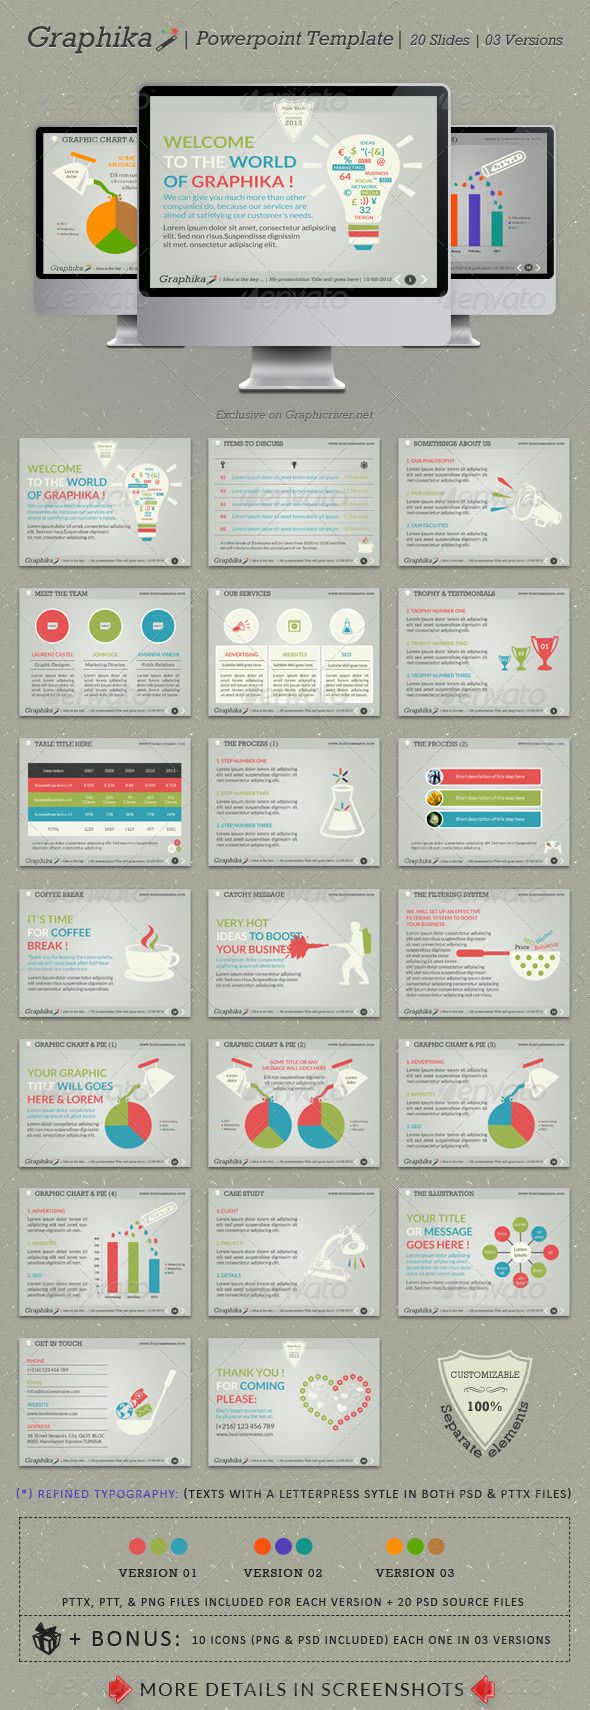 Graphika PowerPoint Template | Template, Ppt design and Presentation ...